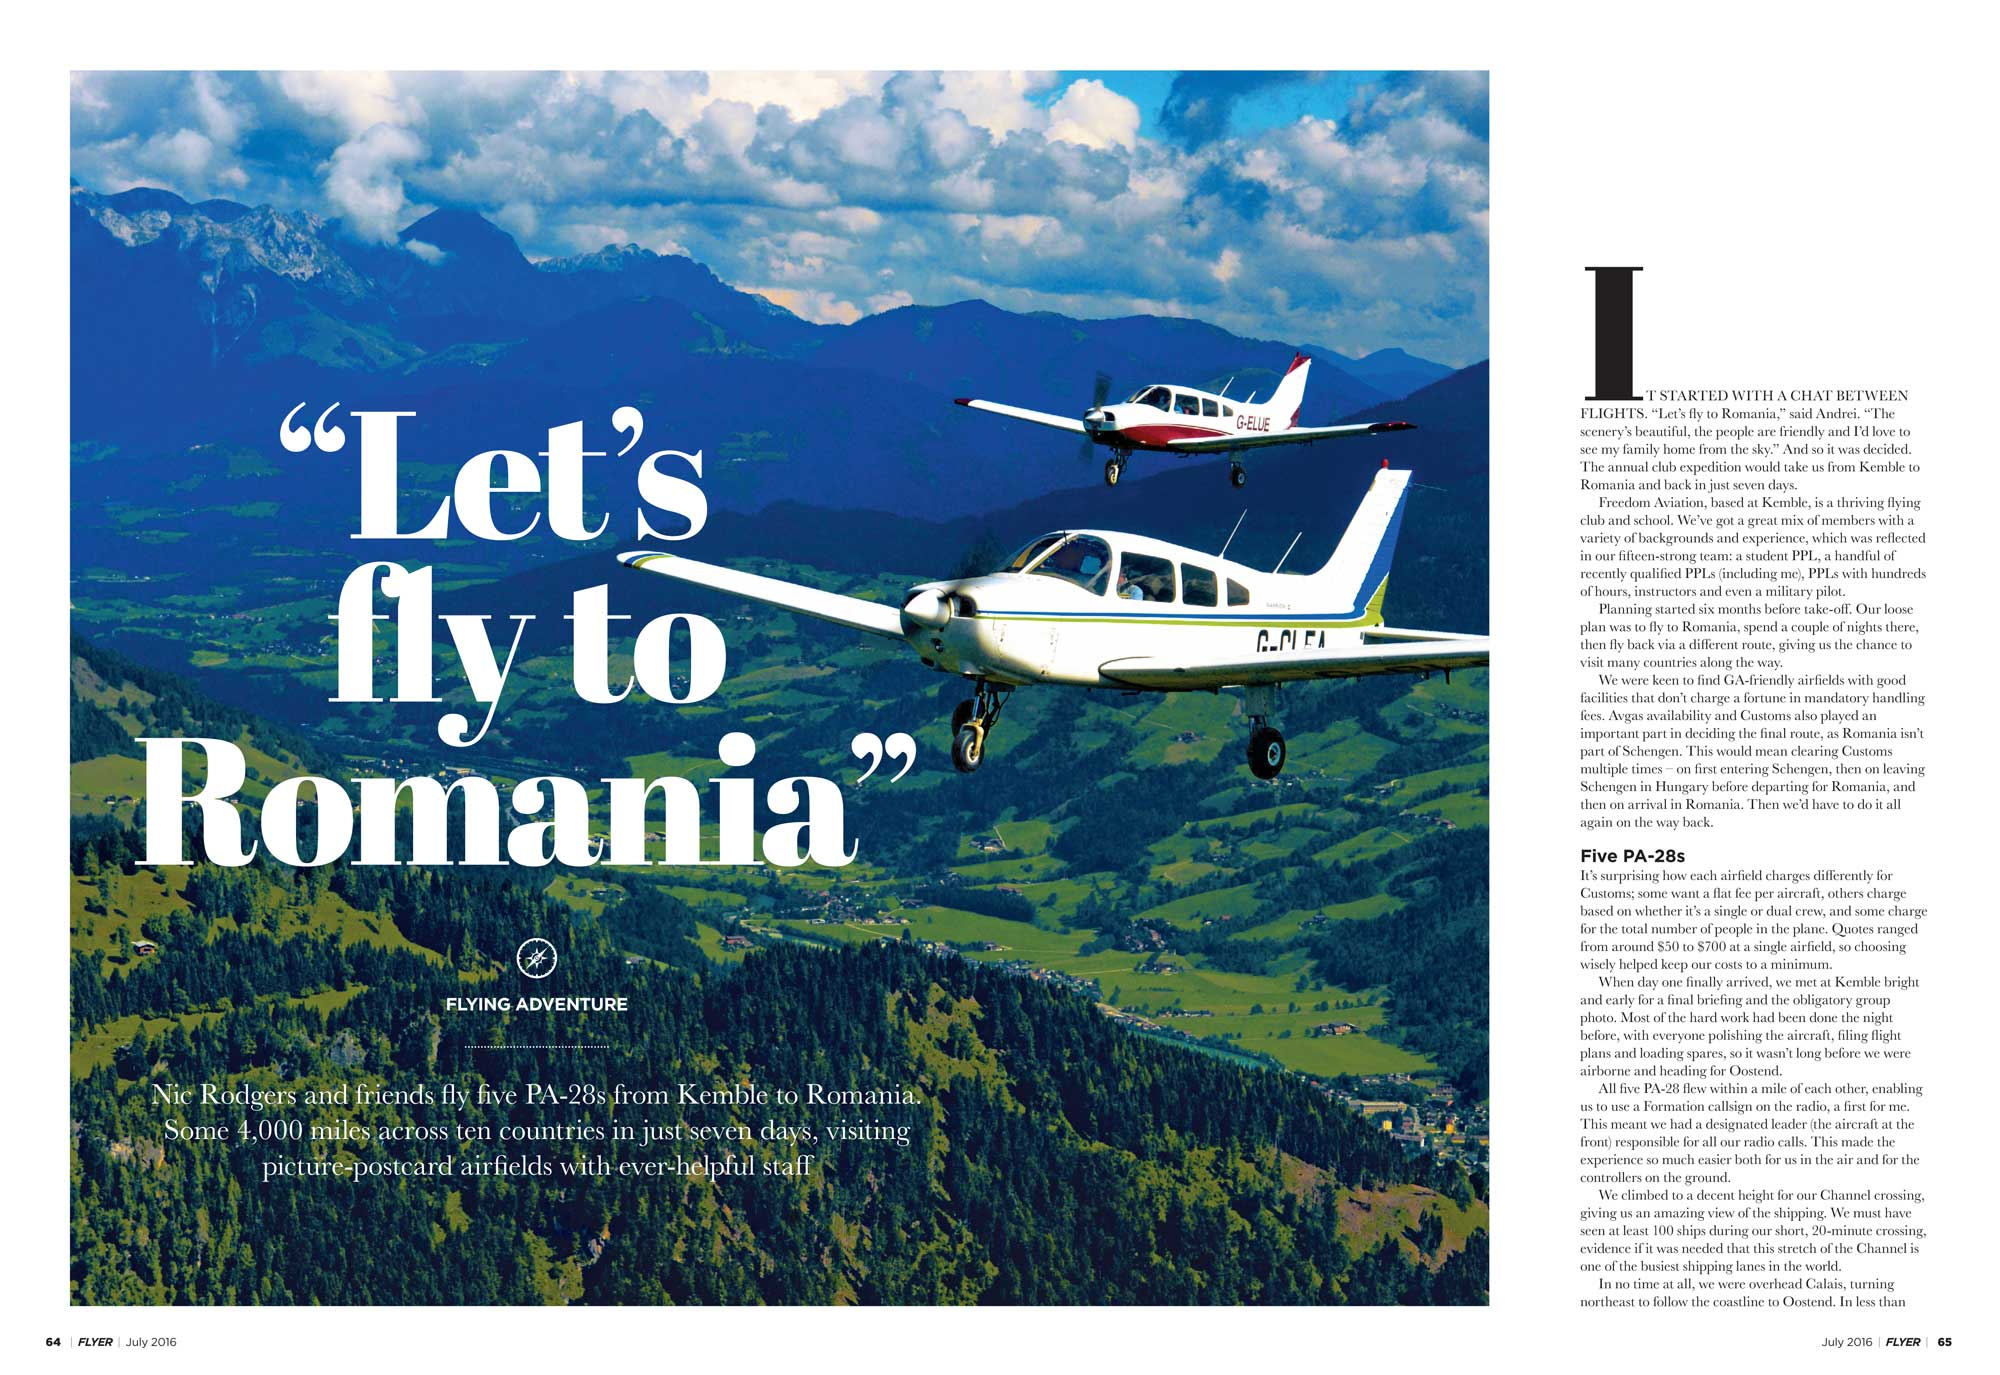 Romania flying adventure